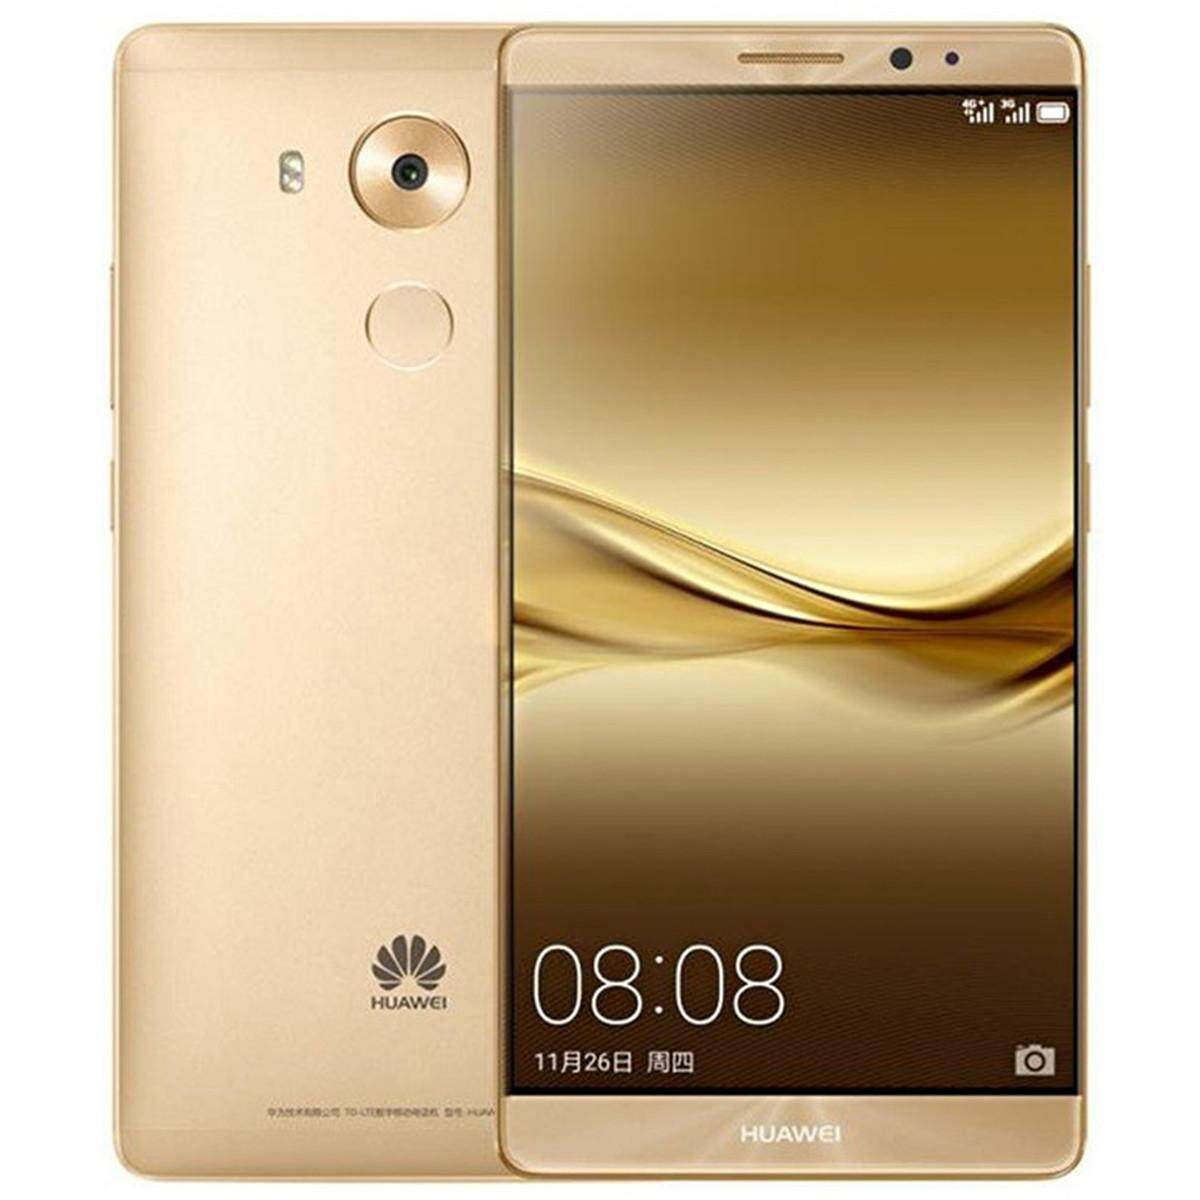 "Huawei Mate 8 NXT-AL10 6"" FDD-LTE 4G Android Tablet Phone w/ 4GB RAM, 64GB ROM – Champagne Gold"